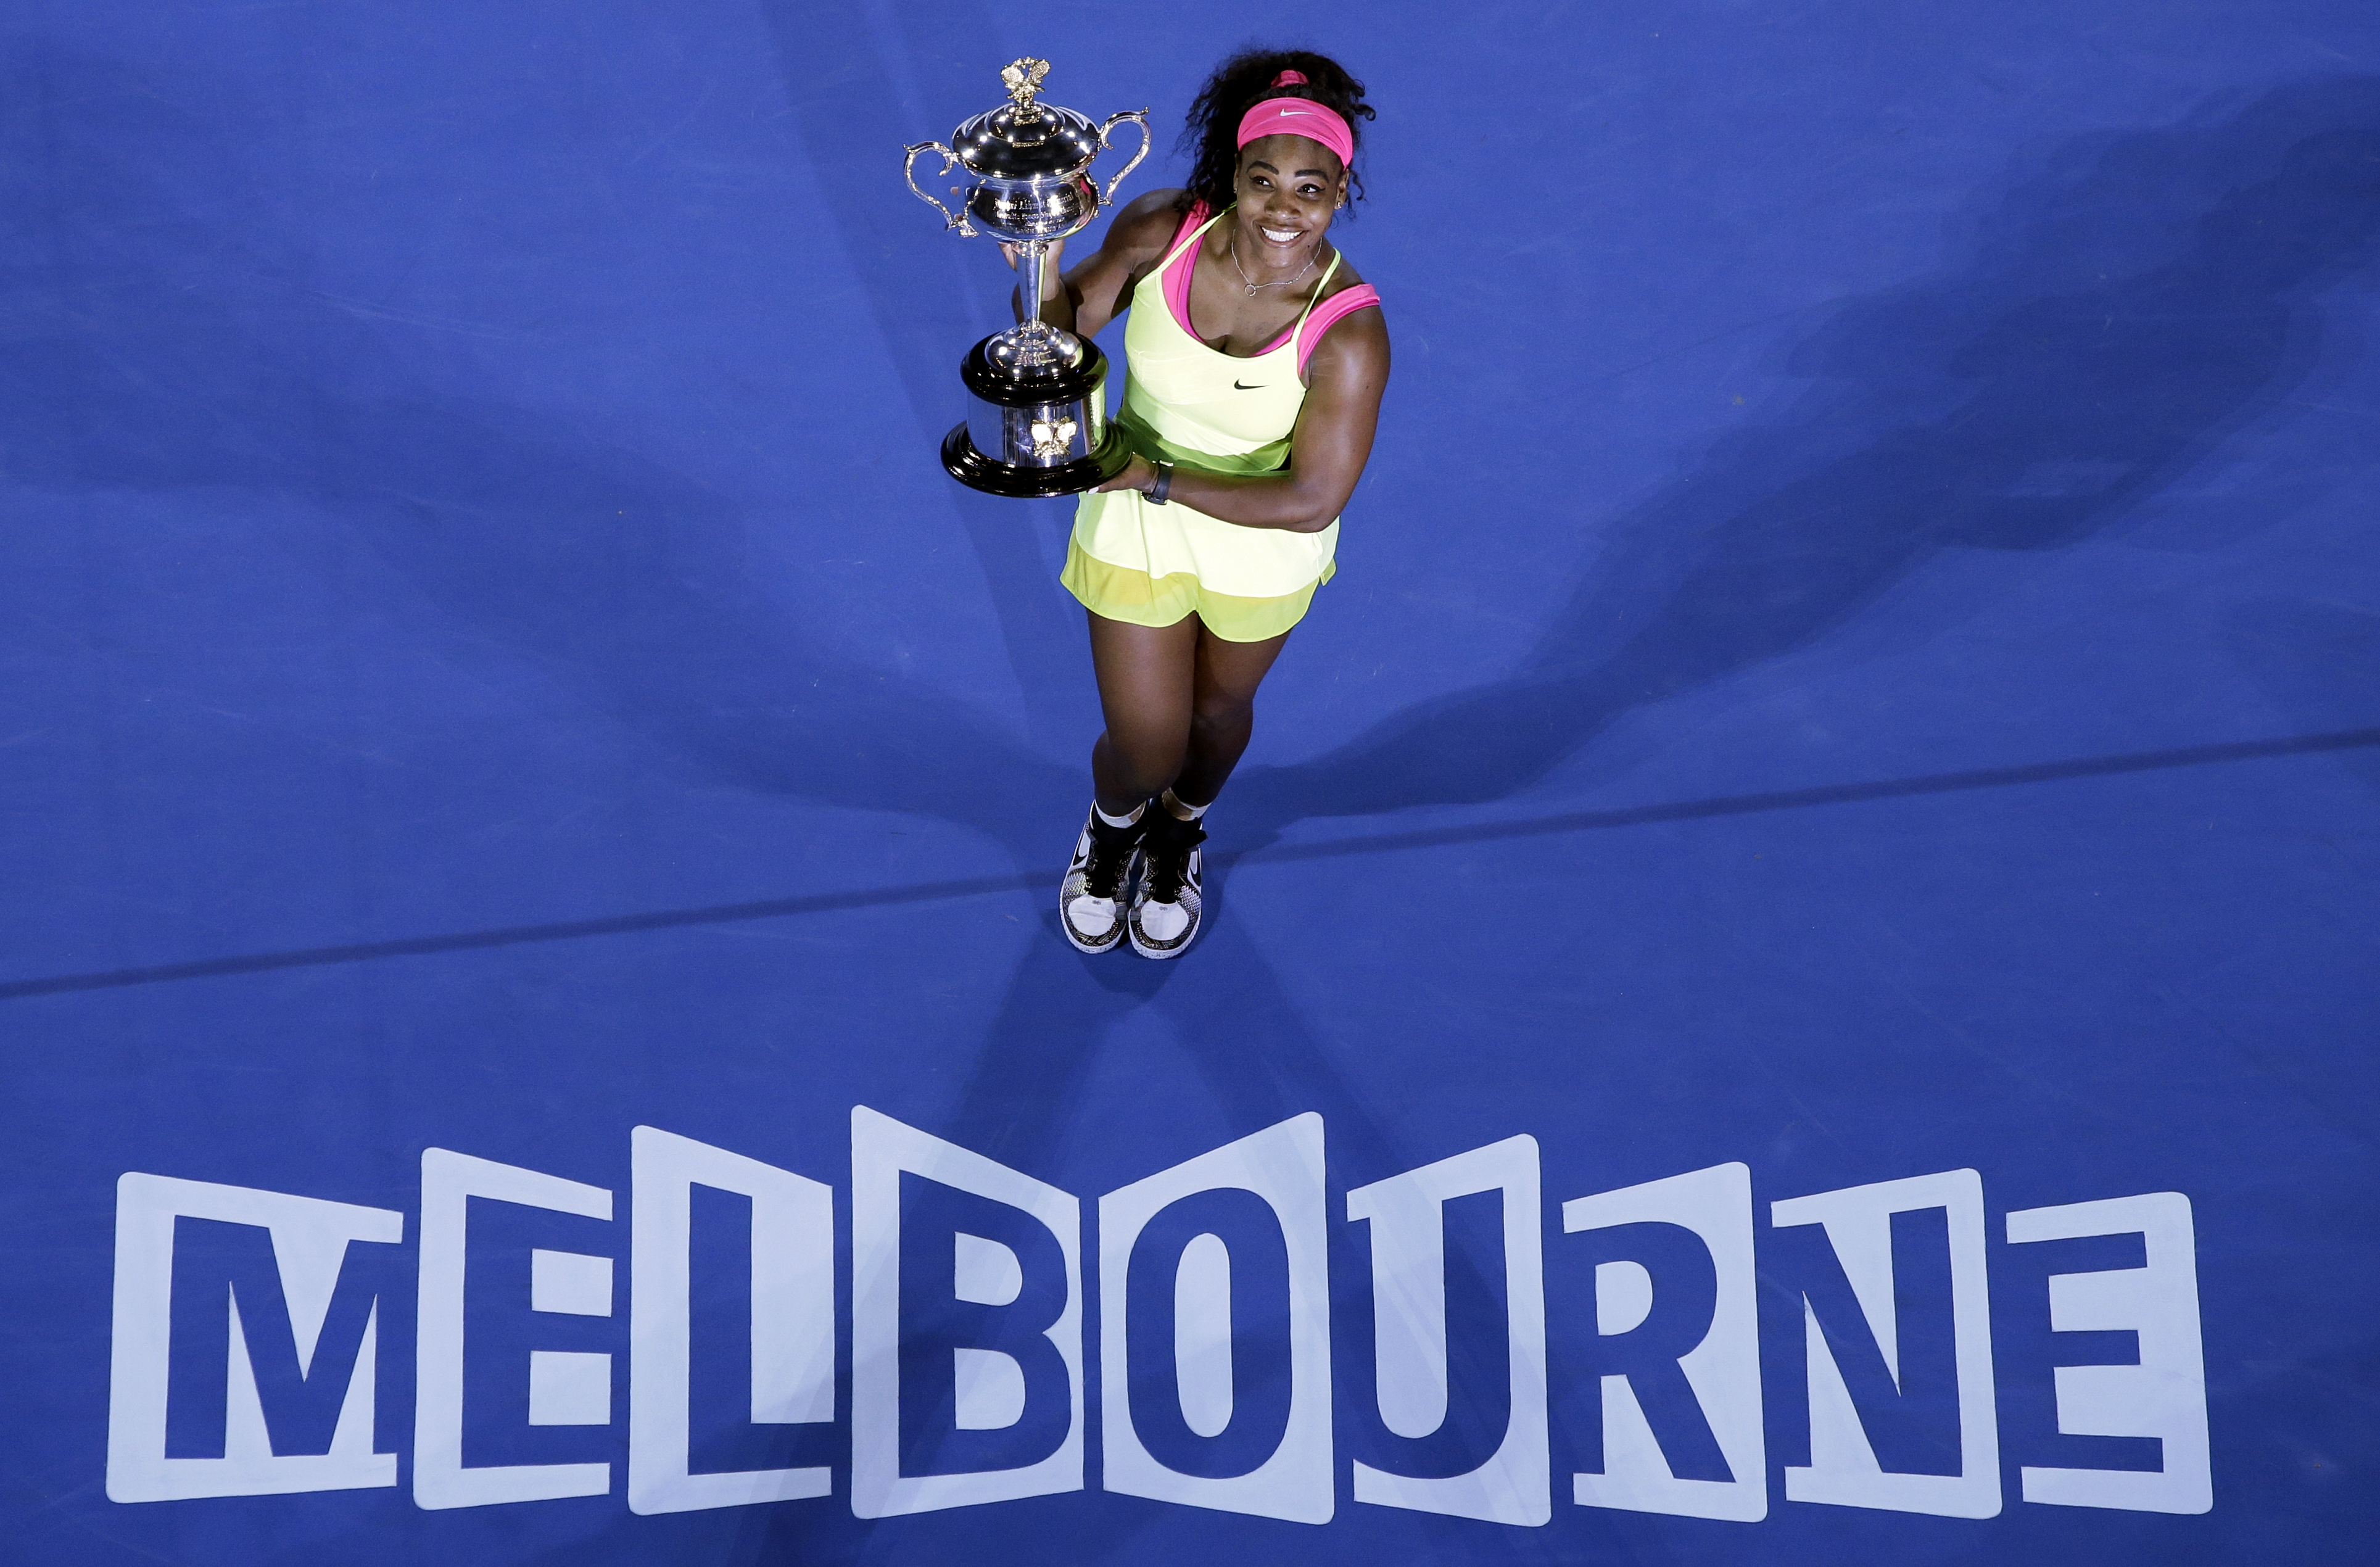 Serena Williams of the U.S. holds the trophy after defeating Maria Sharapova of Russia in the women's singles final at the Australian Open tennis championship in Melbourne, Australia, Saturday, Jan. 31, 2015. (AP Photo/Lee Jin-man)